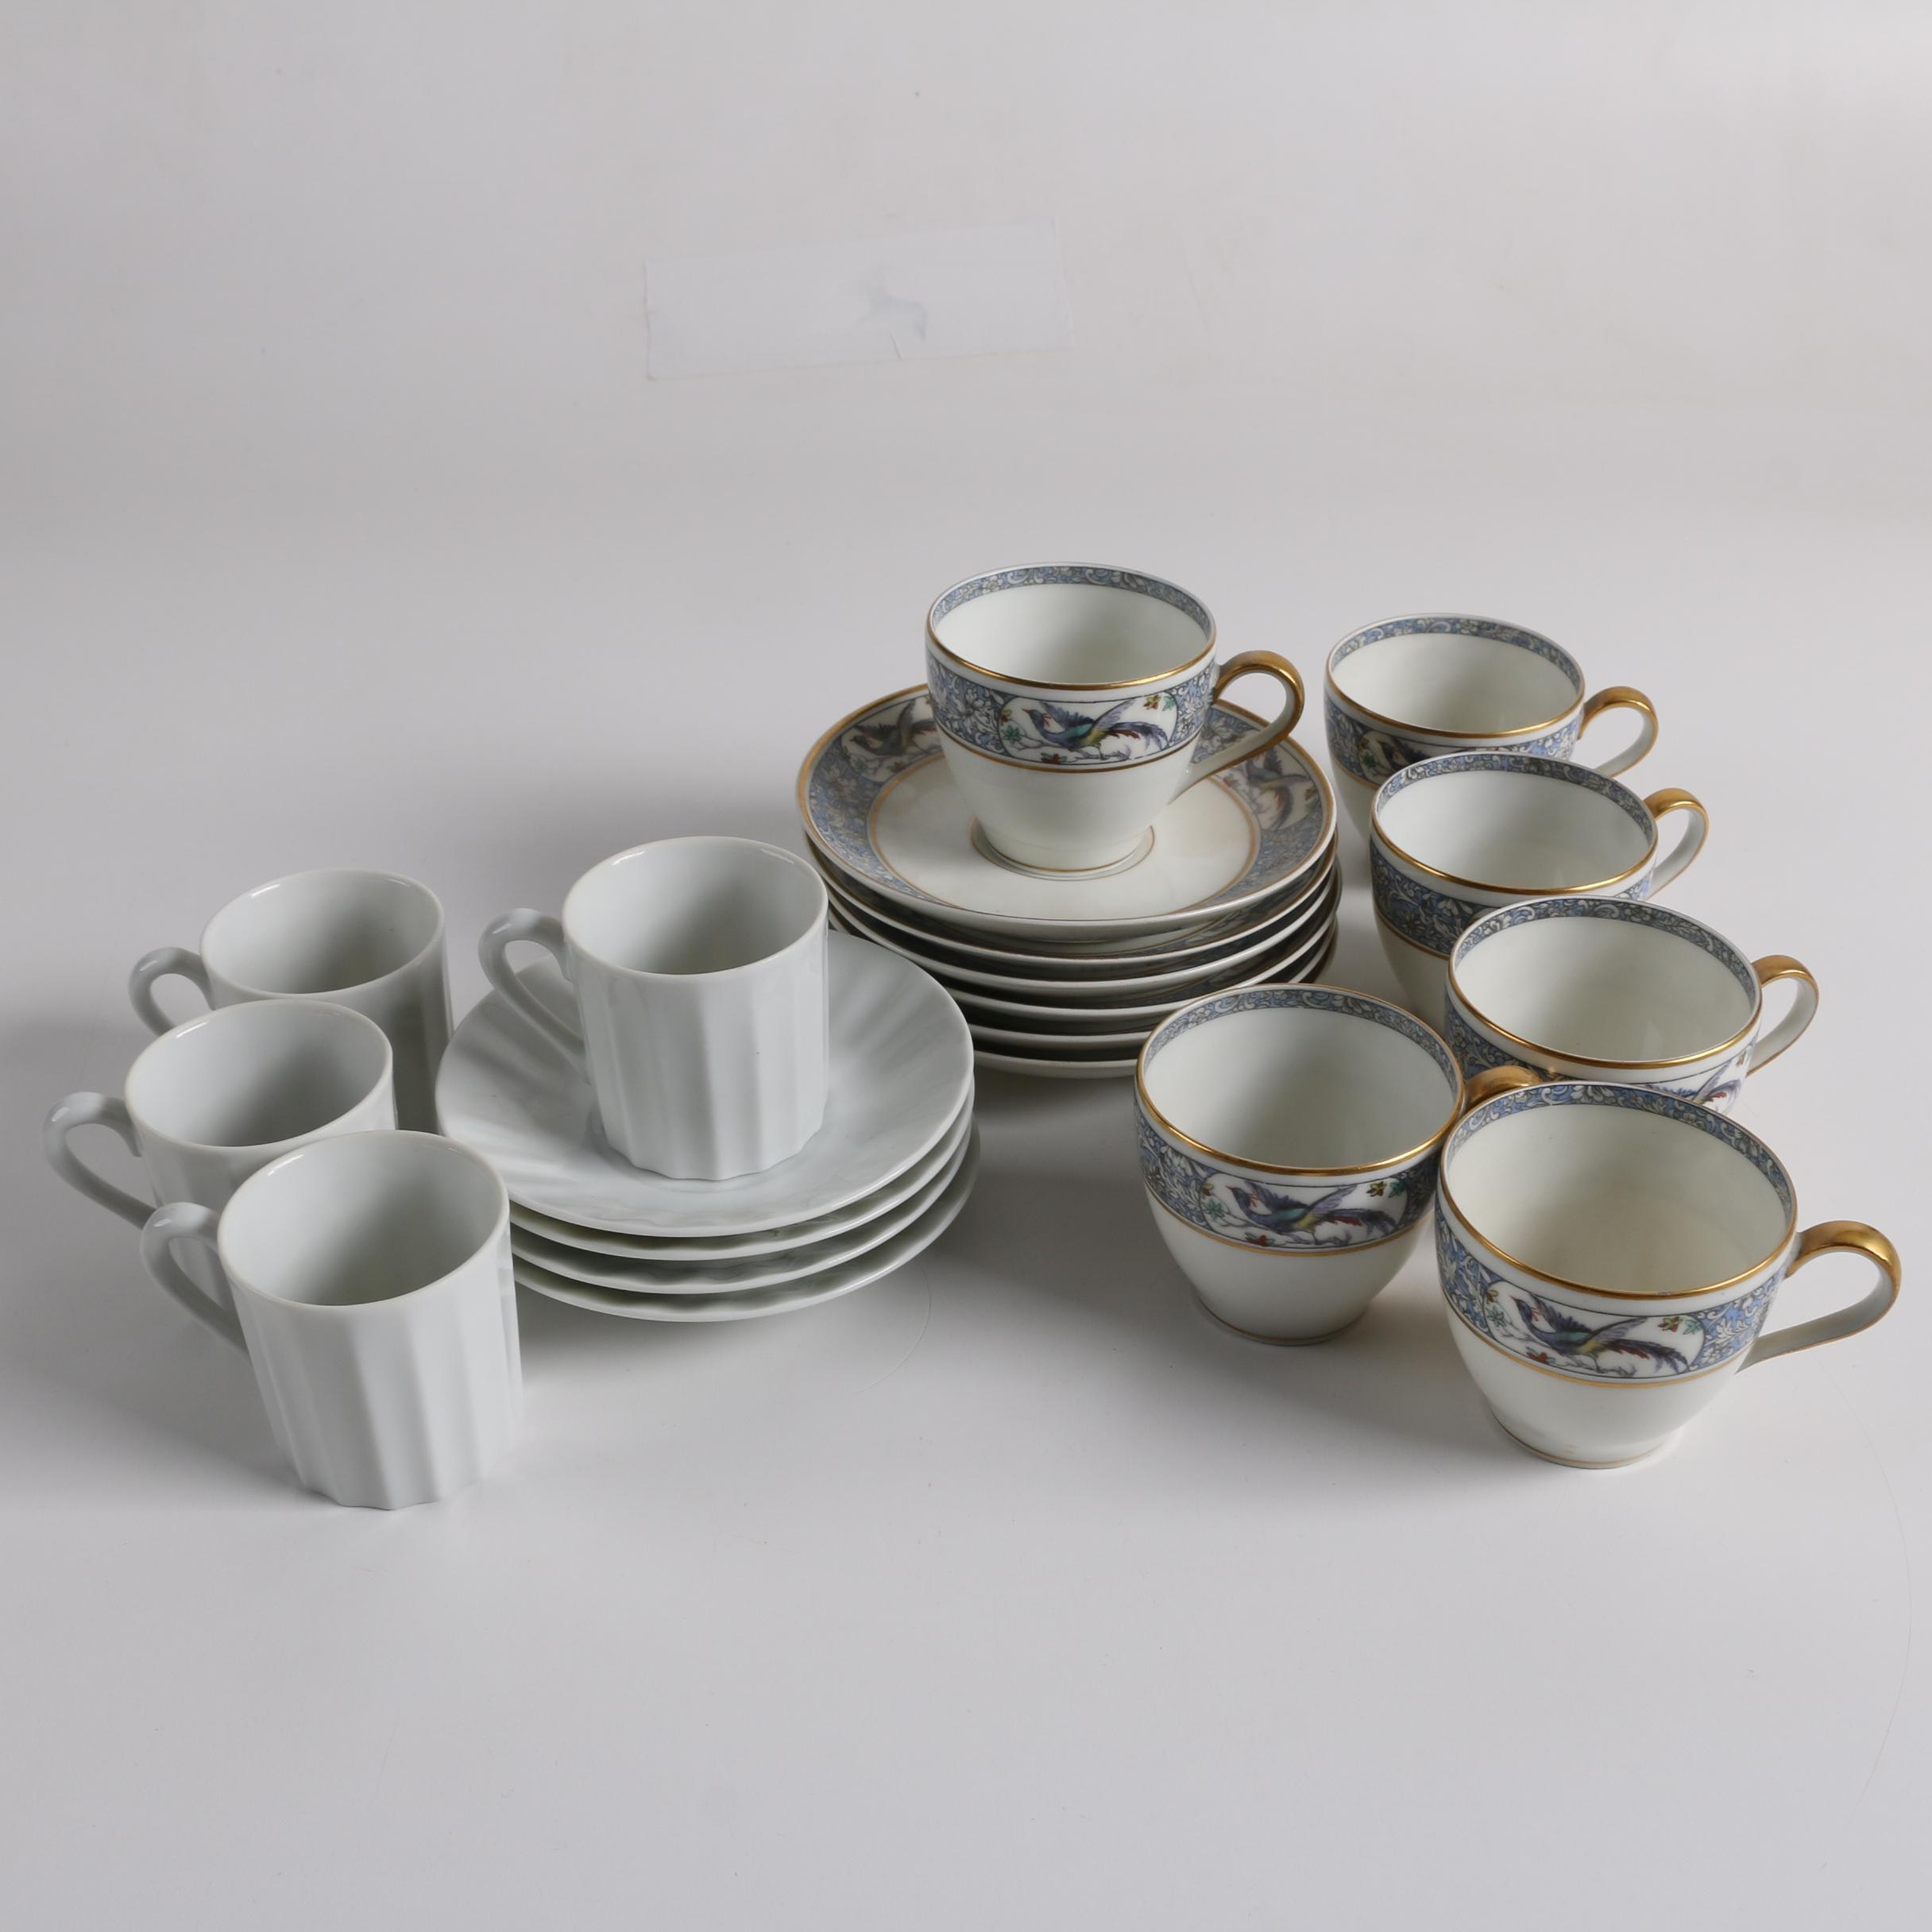 """Theodore Haviland Limoges """"Rani"""" Porcelain and Other Teacups and Saucers"""